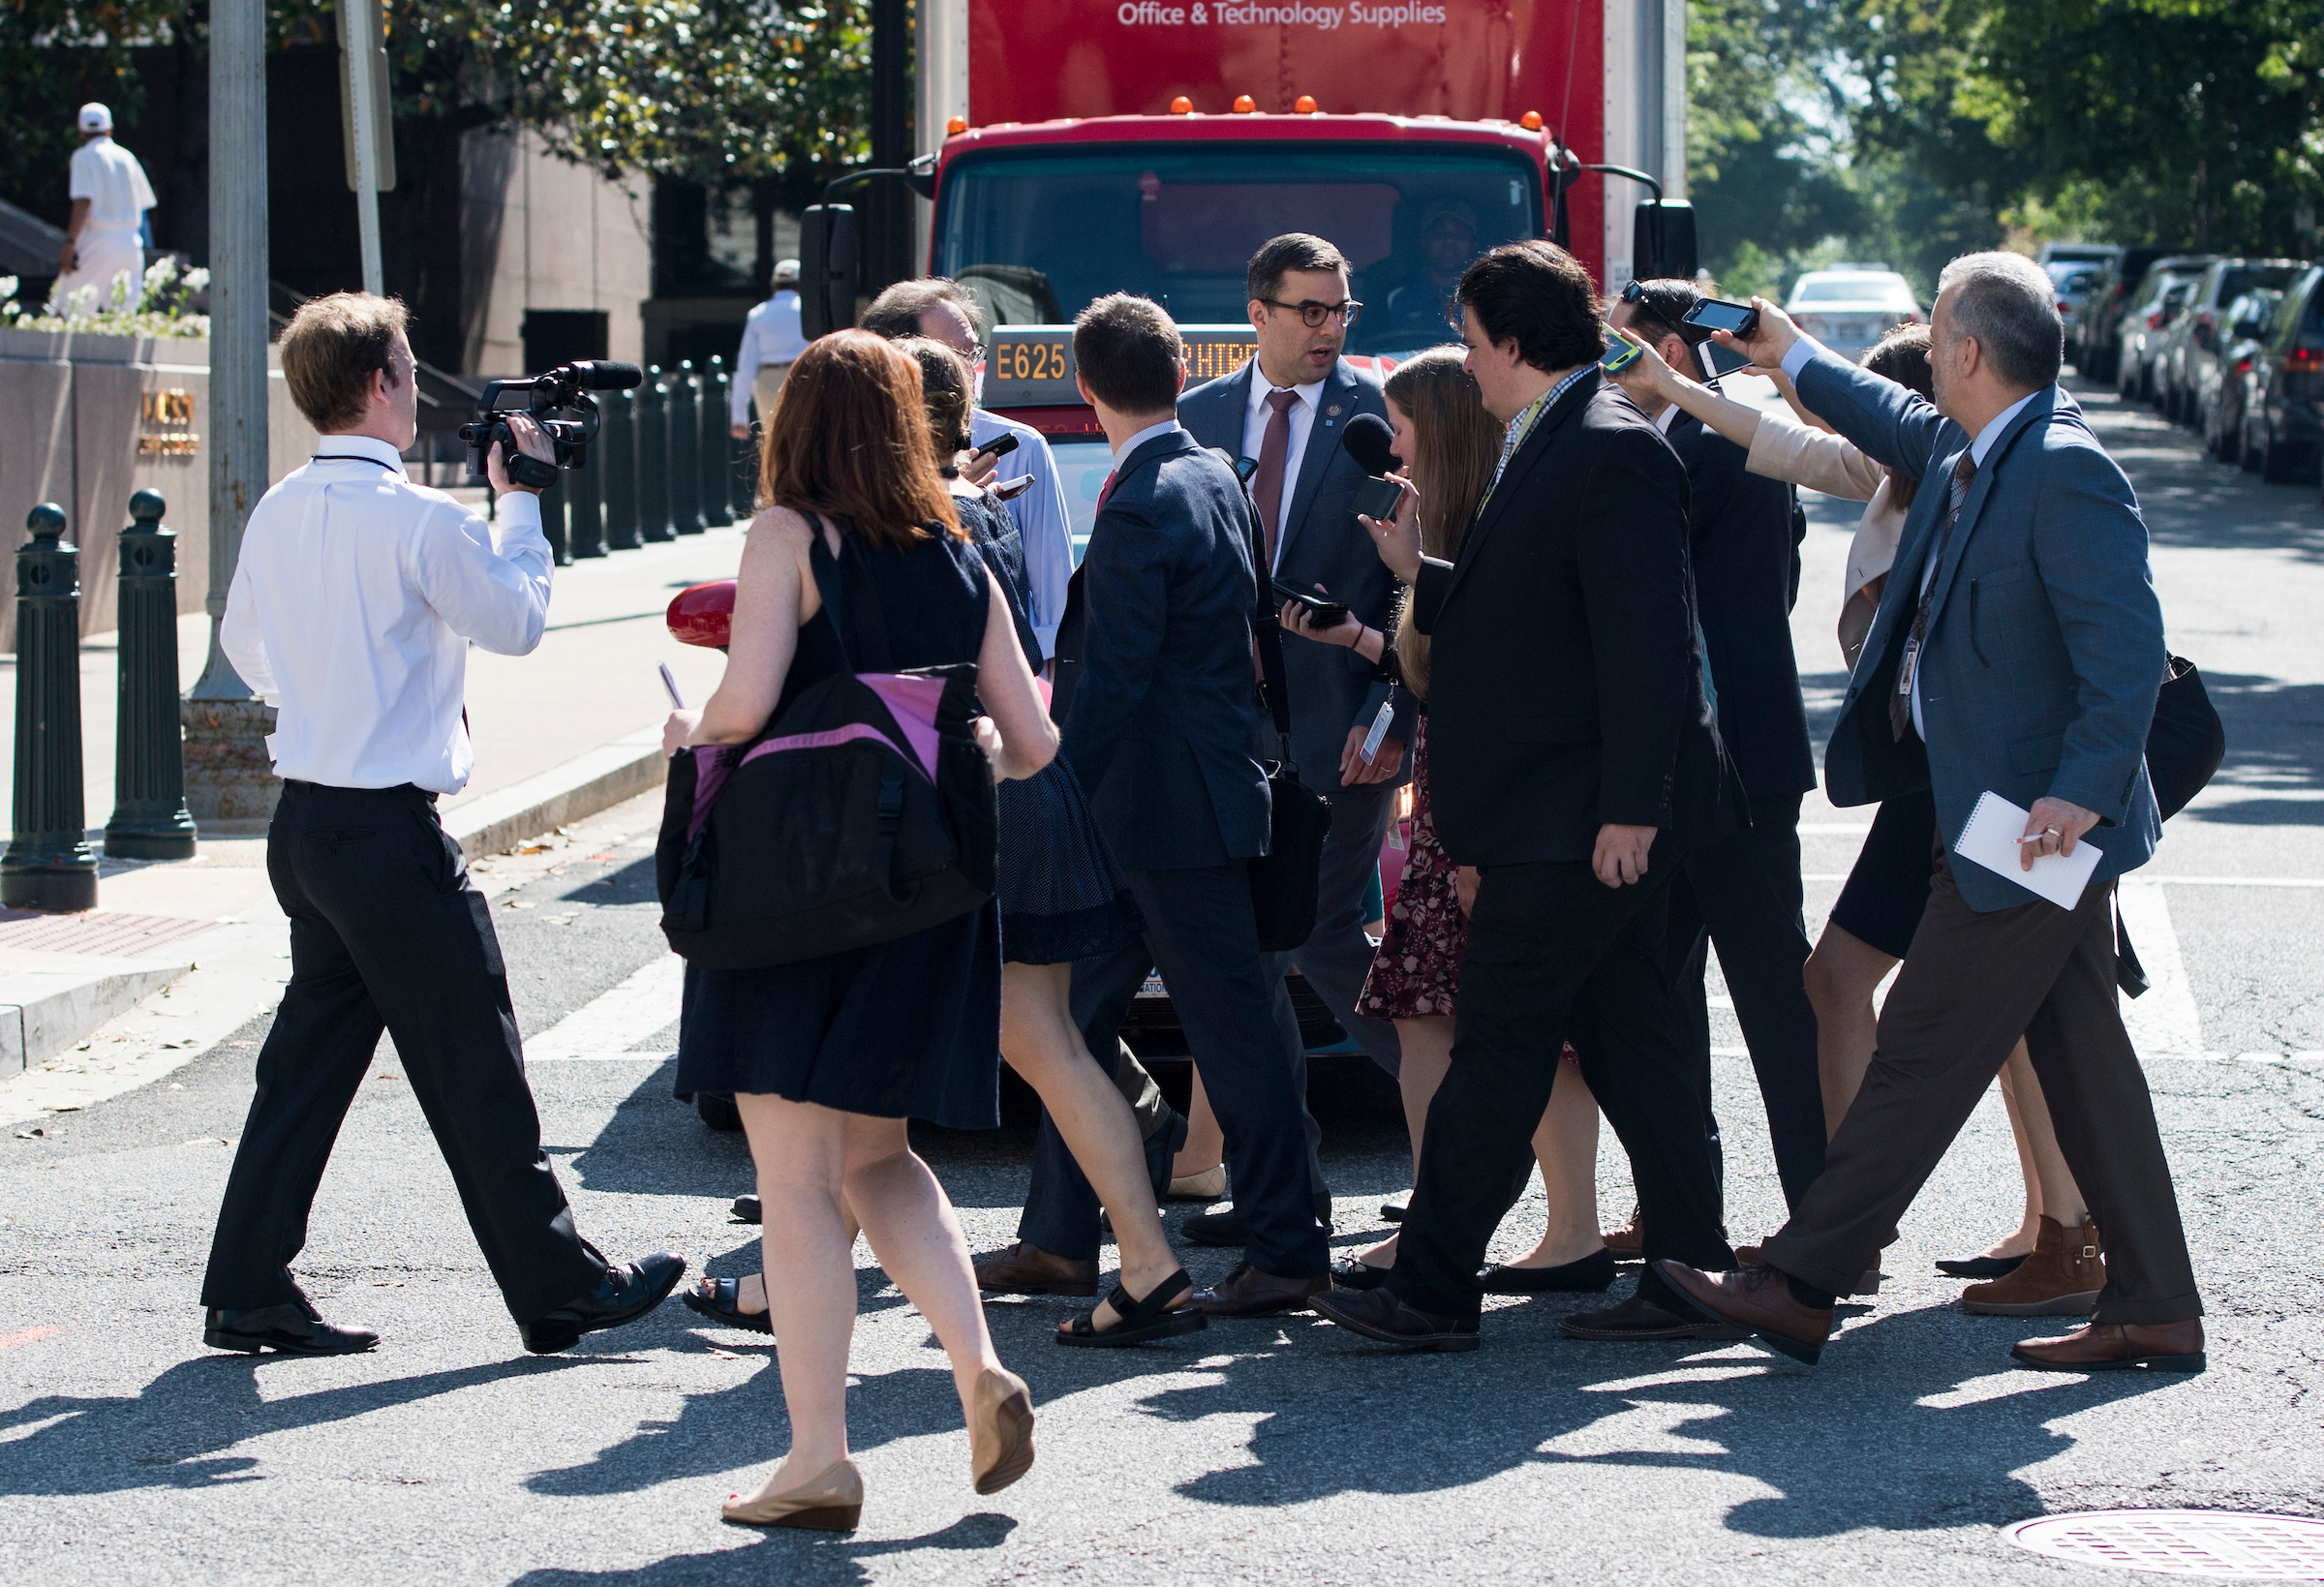 Reporters follow Rep. Justin Amash, R-Mich., across the street as he leaves the House Republican Conference meeting at the Capitol Hill Club in Washington on Wednesday. (Bill Clark/CQ Roll Call)